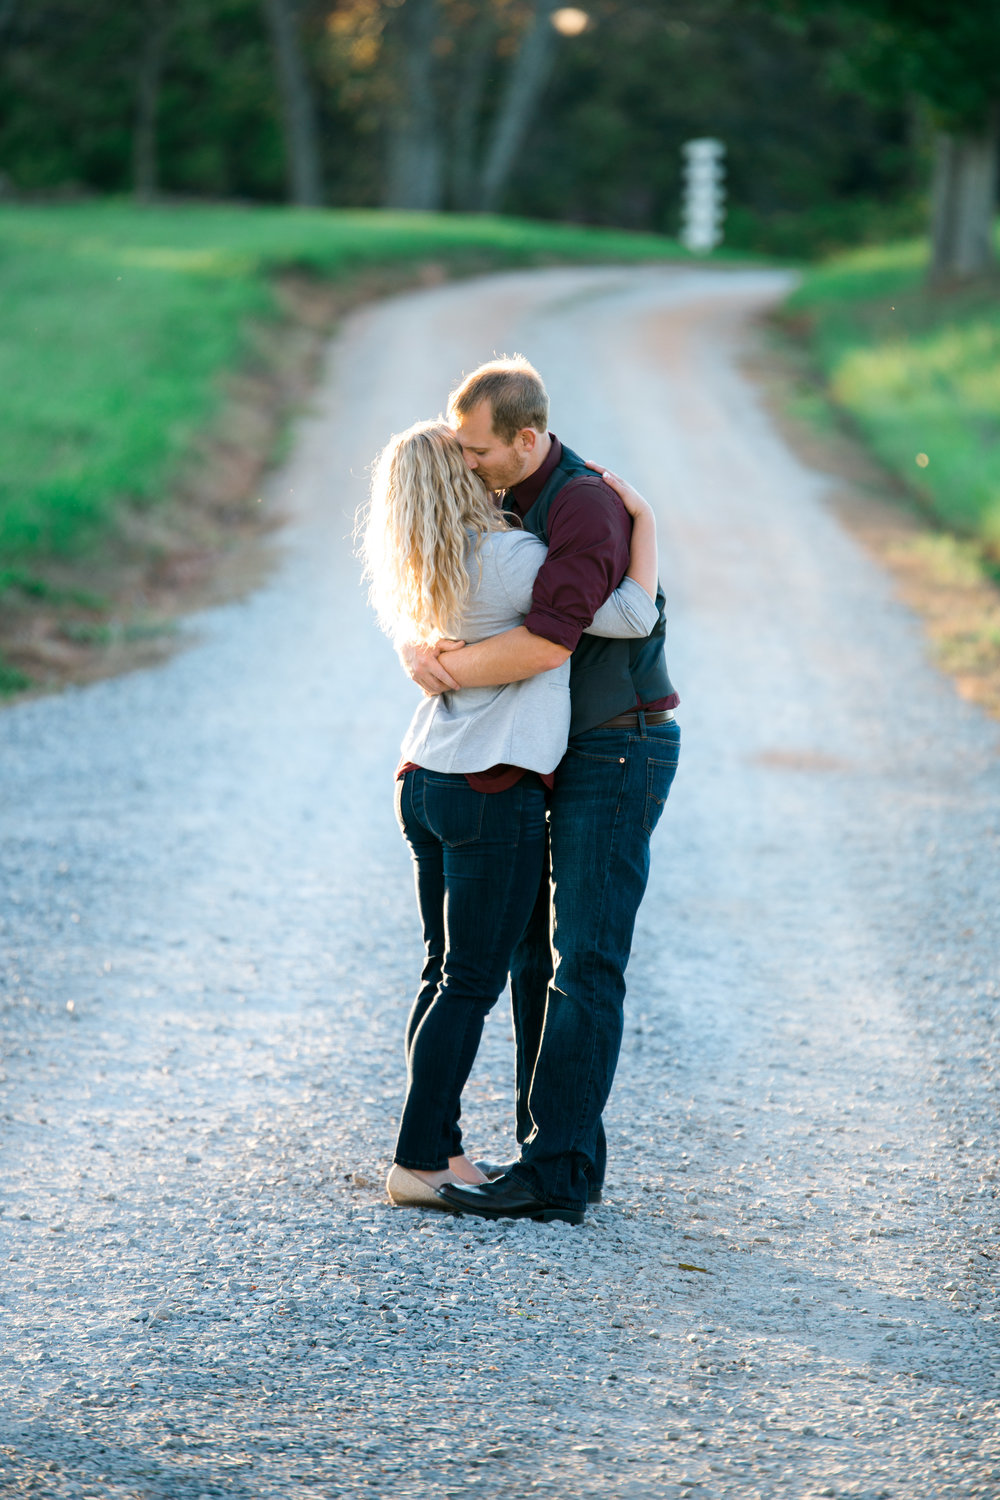 Lynchburg_College_Sorella_Farms_Baseball_Ballet_Virginia_Engagement_Session_Wedding_Photographers (72).jpg